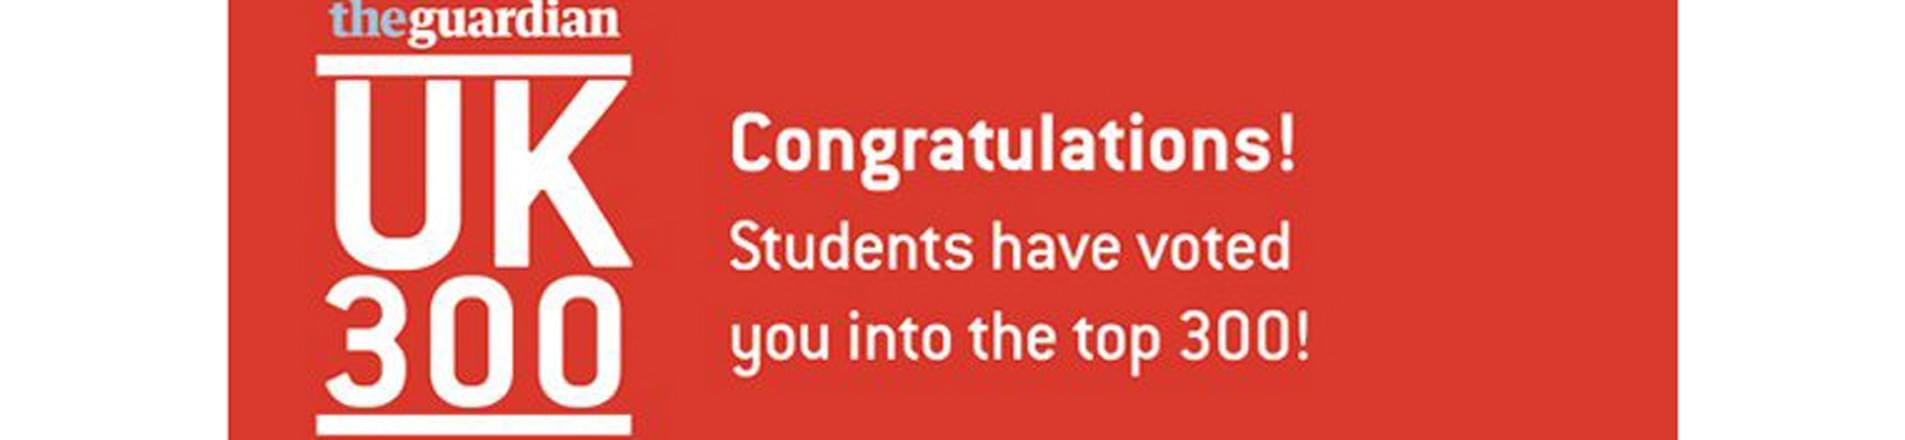 the guardian UK 300 Graduate Employers Logo including the text ' Congratulations! Students have voted you in the top 300!'